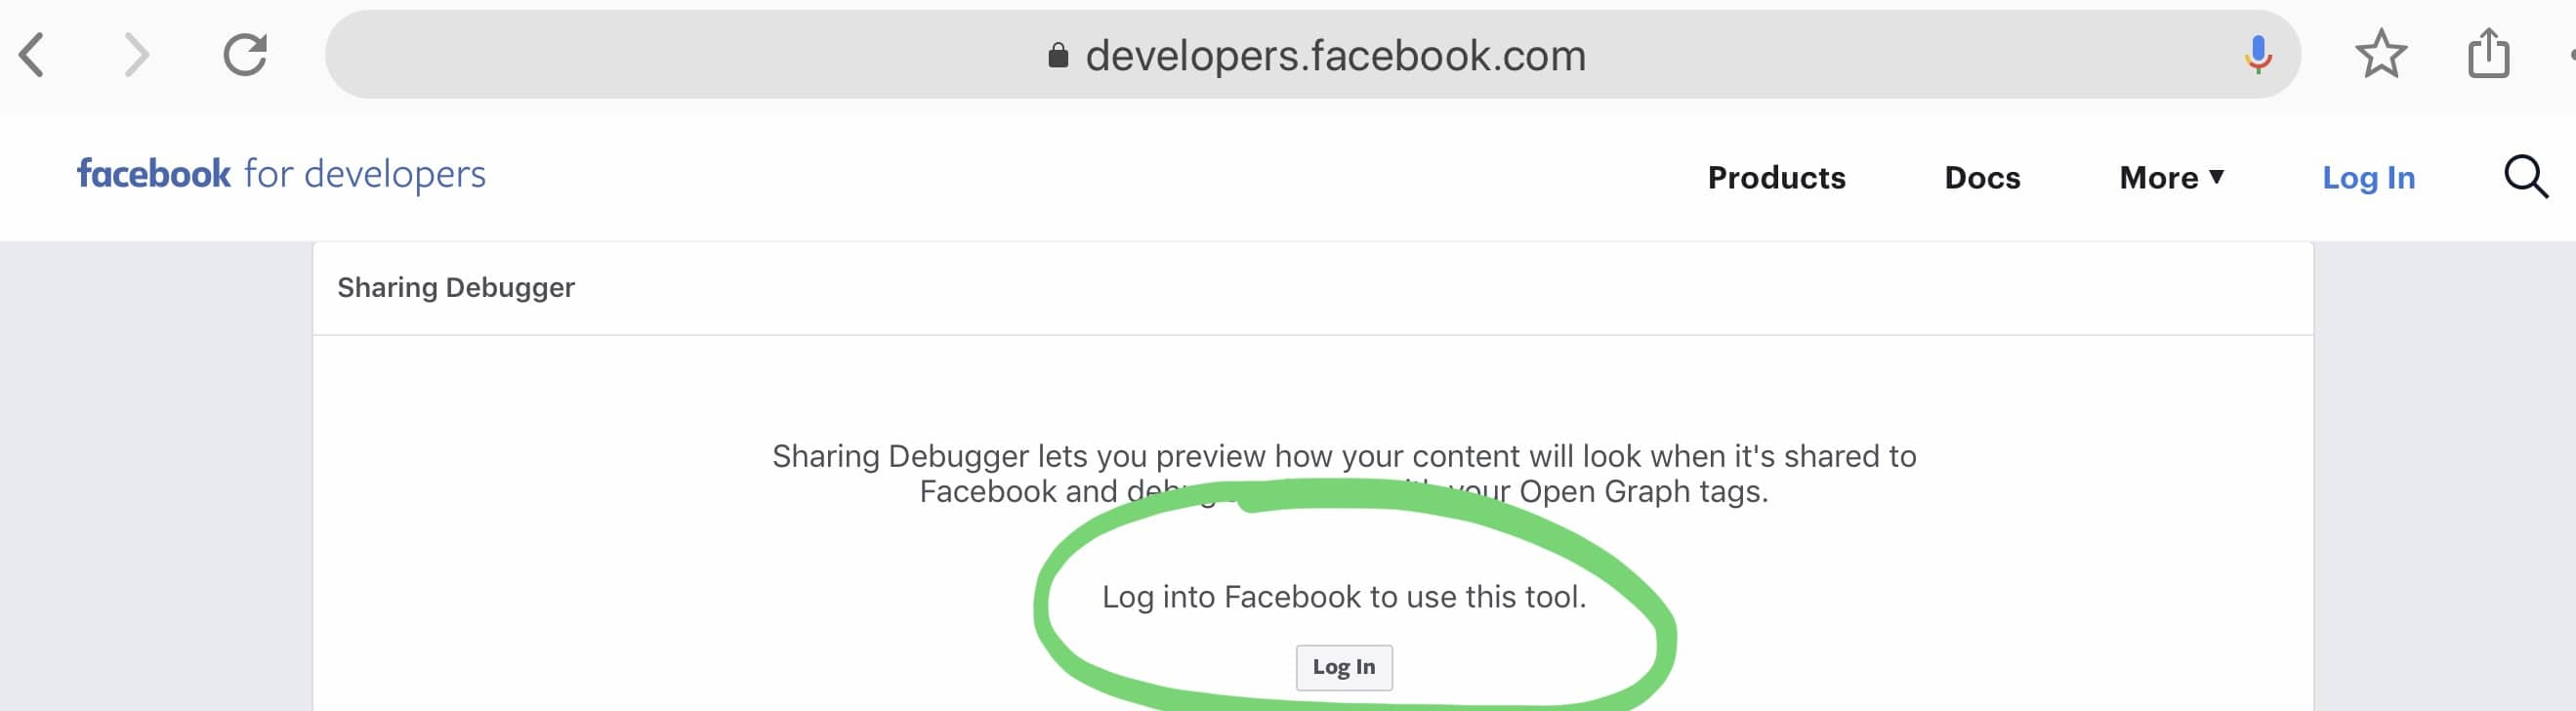 Login to Facebook Developer for Debugger